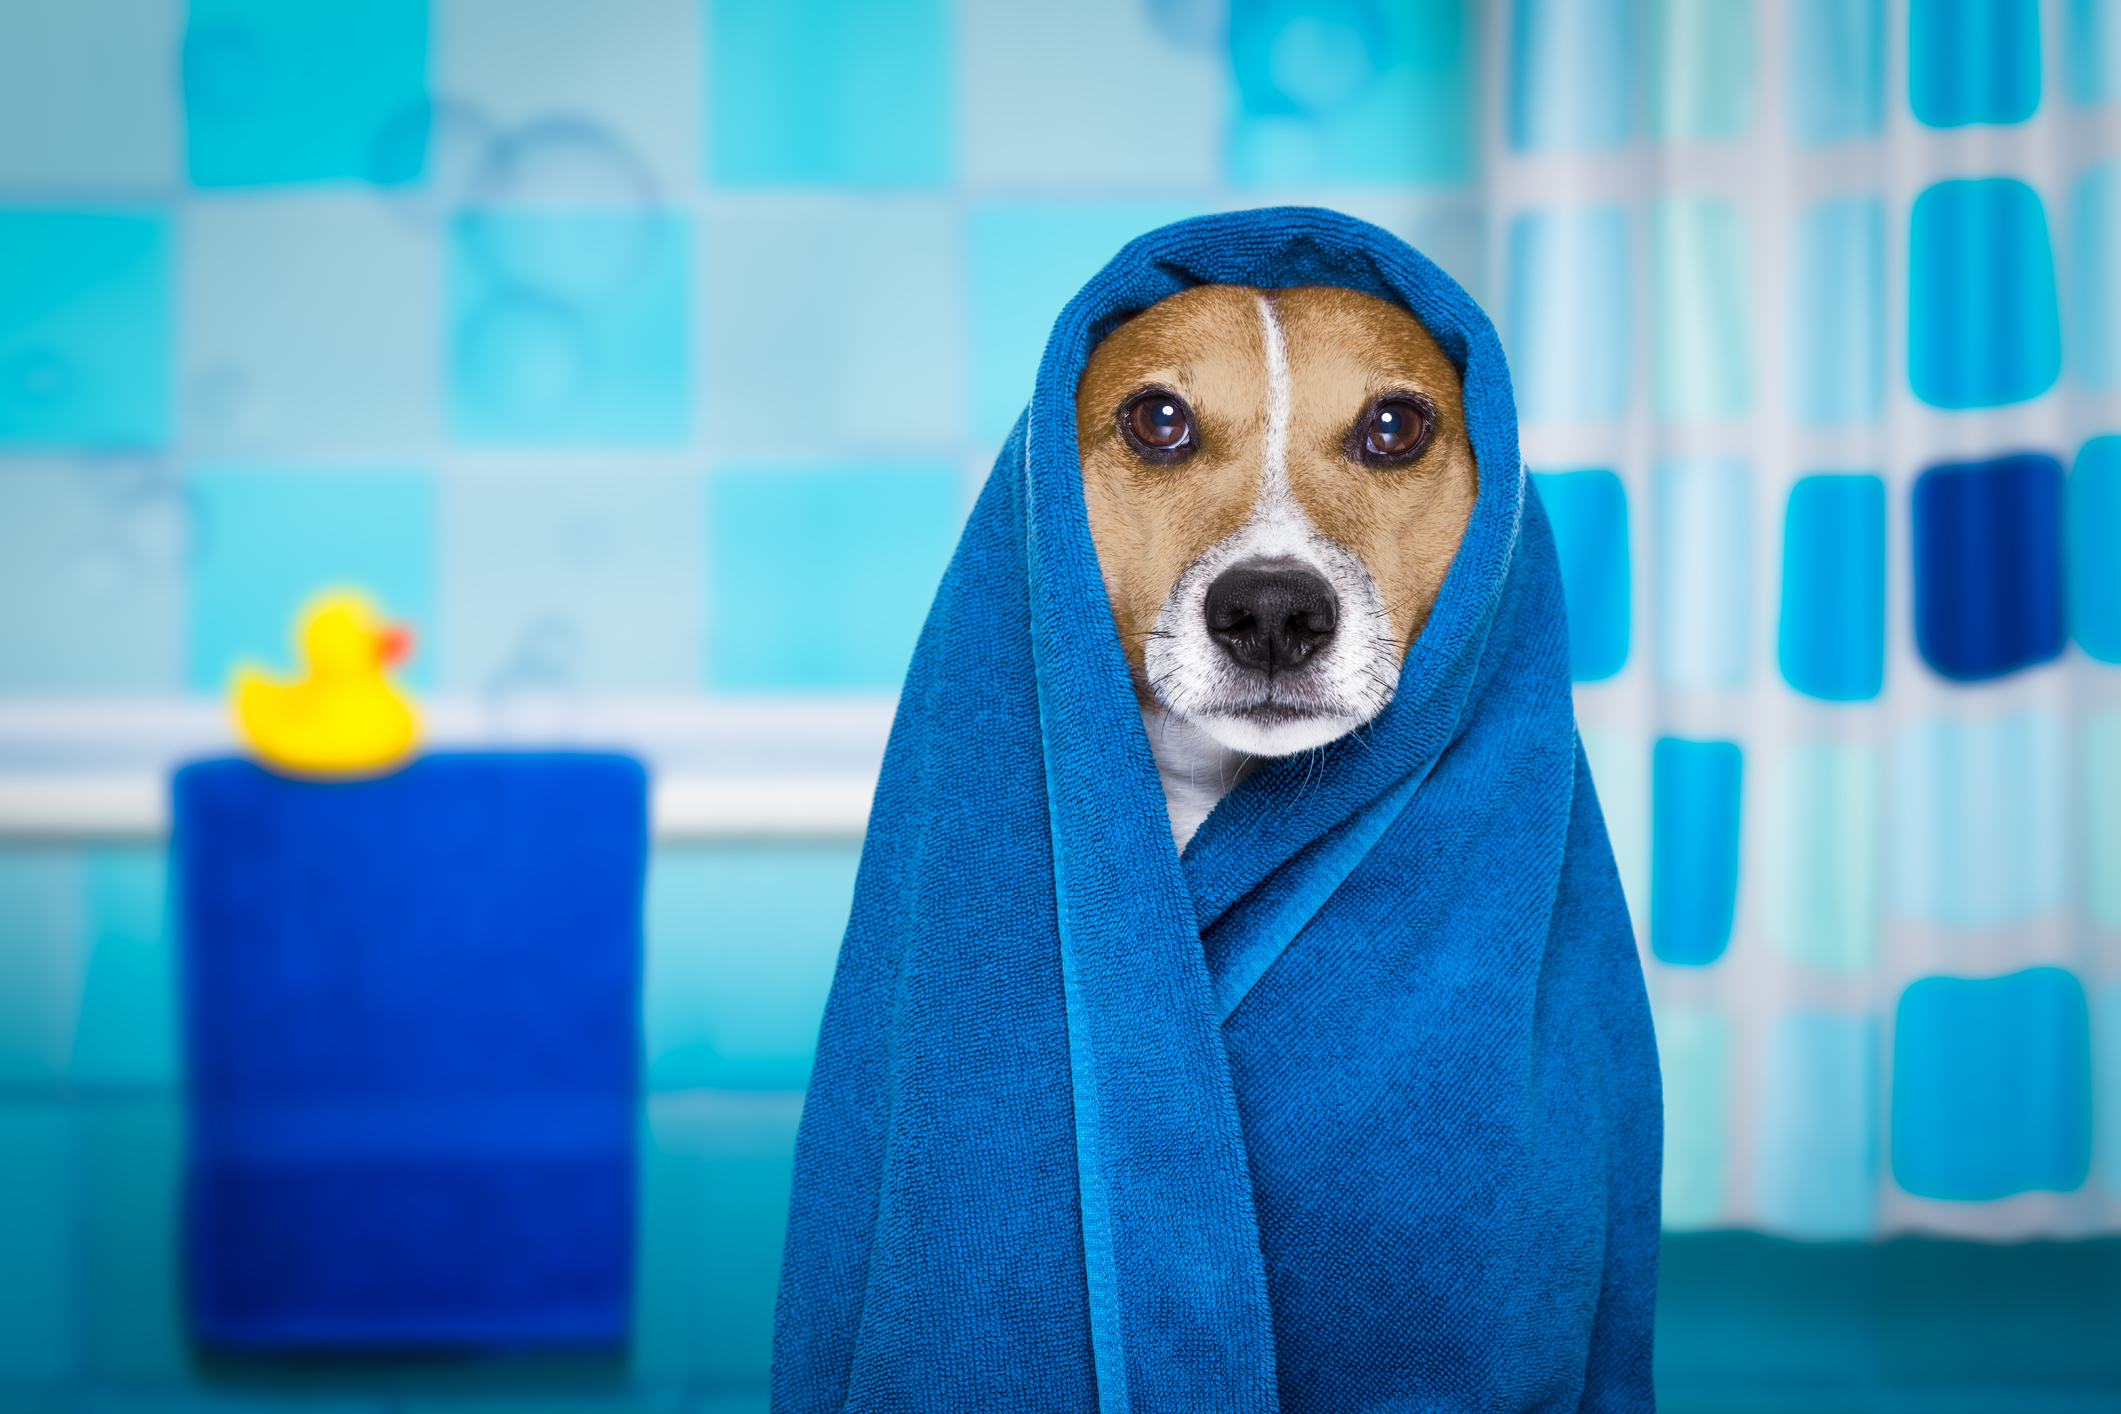 Comfort 101: Is a Shower Better or a Bath to Save Water?